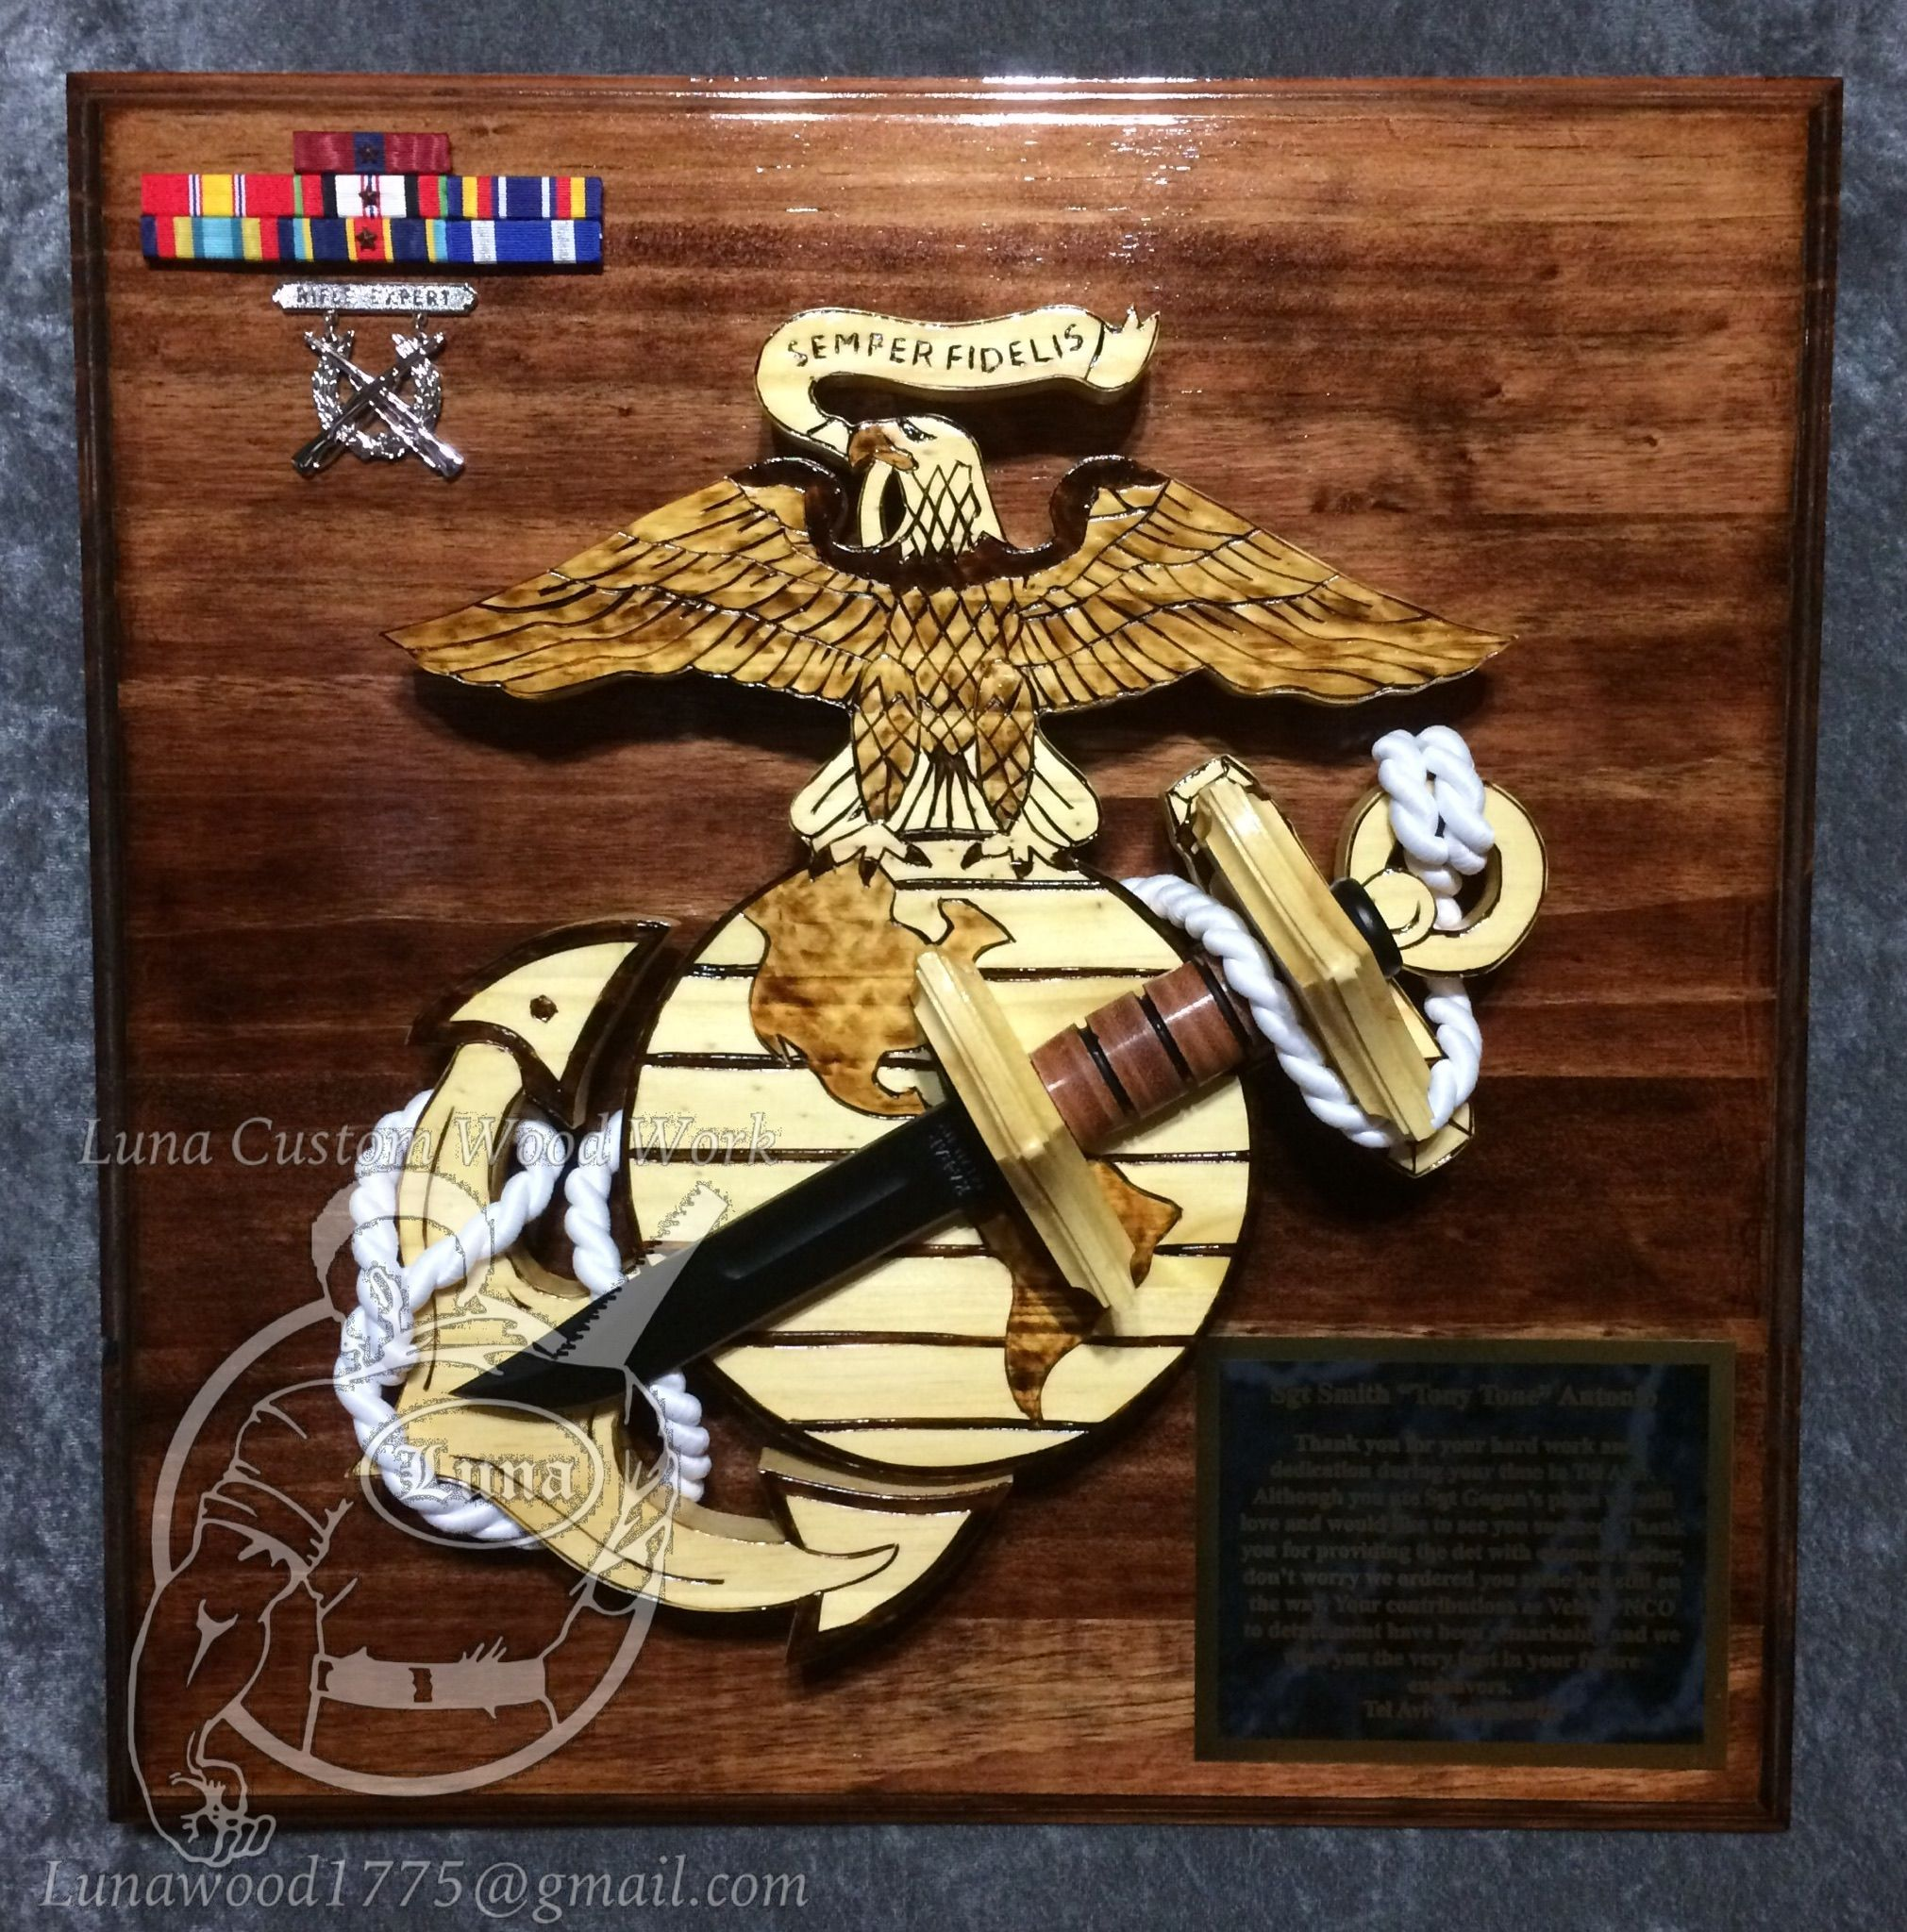 Going Away Quotes For Military Plaques: USMC Plaque Questions On Design Or Price Contact